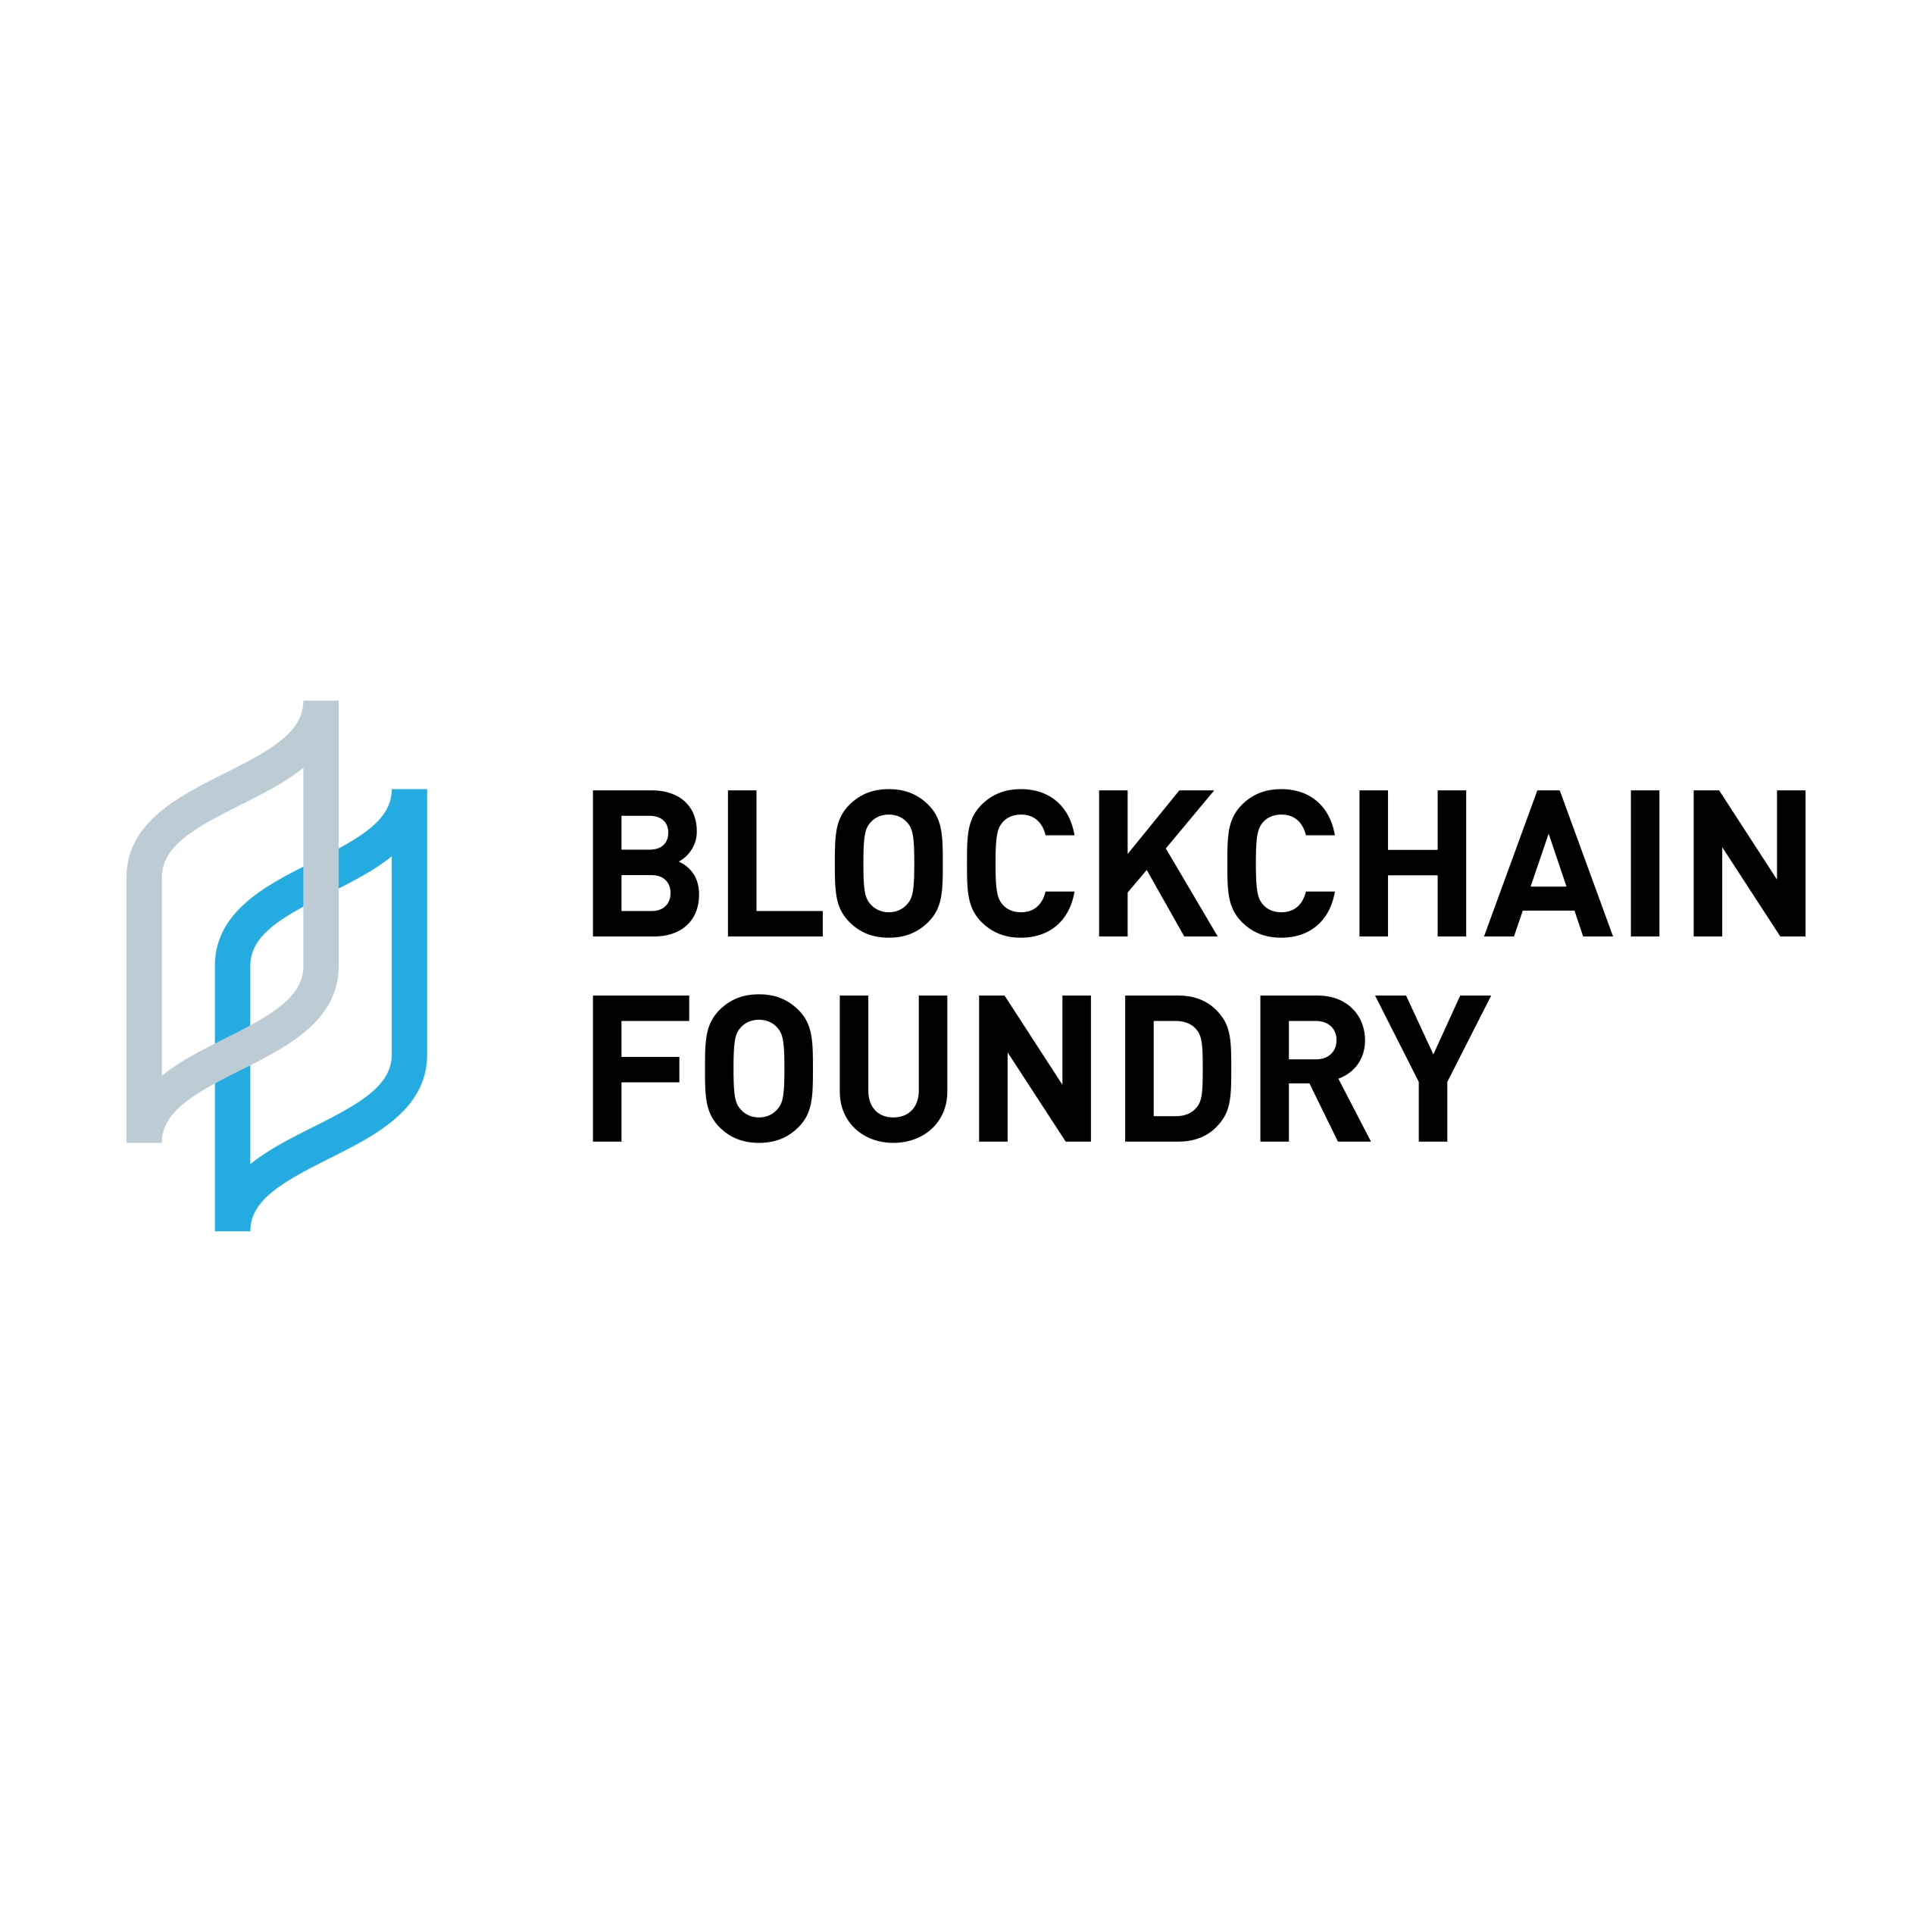 Blockchain Foundry Inc LOGO.jpg